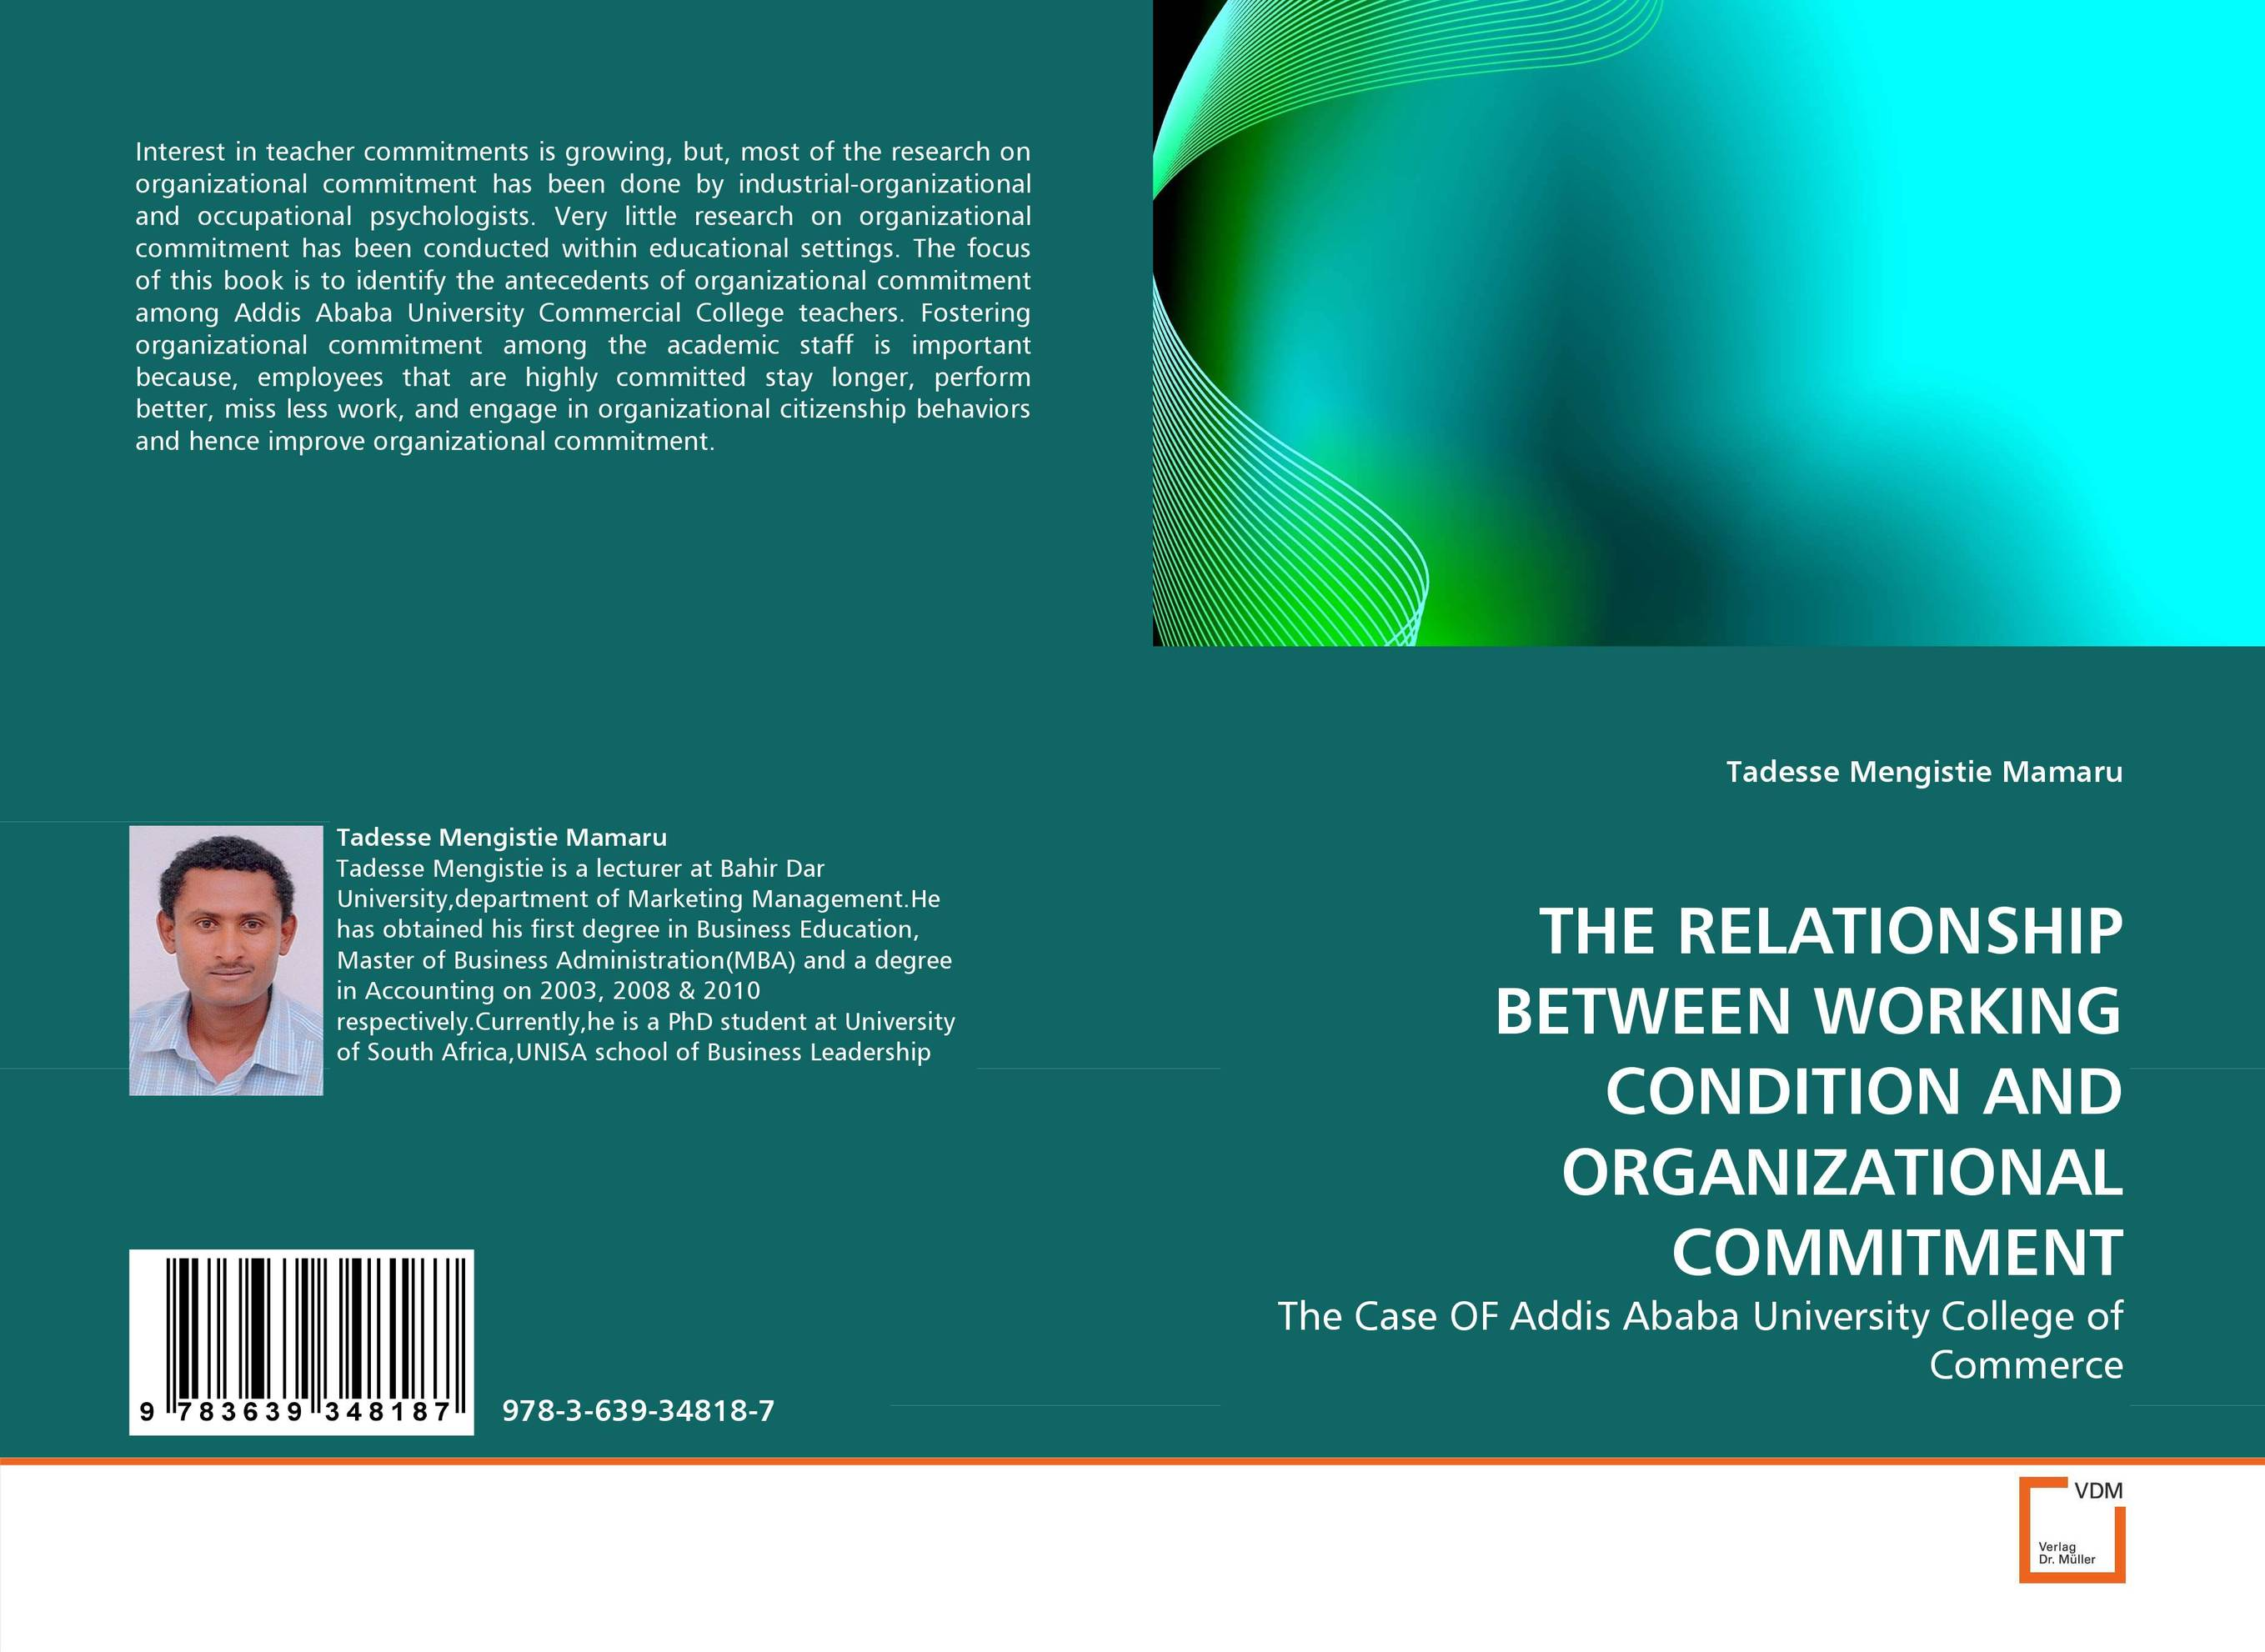 THE RELATIONSHIP BETWEEN WORKING CONDITION AND ORGANIZATIONAL COMMITMENT